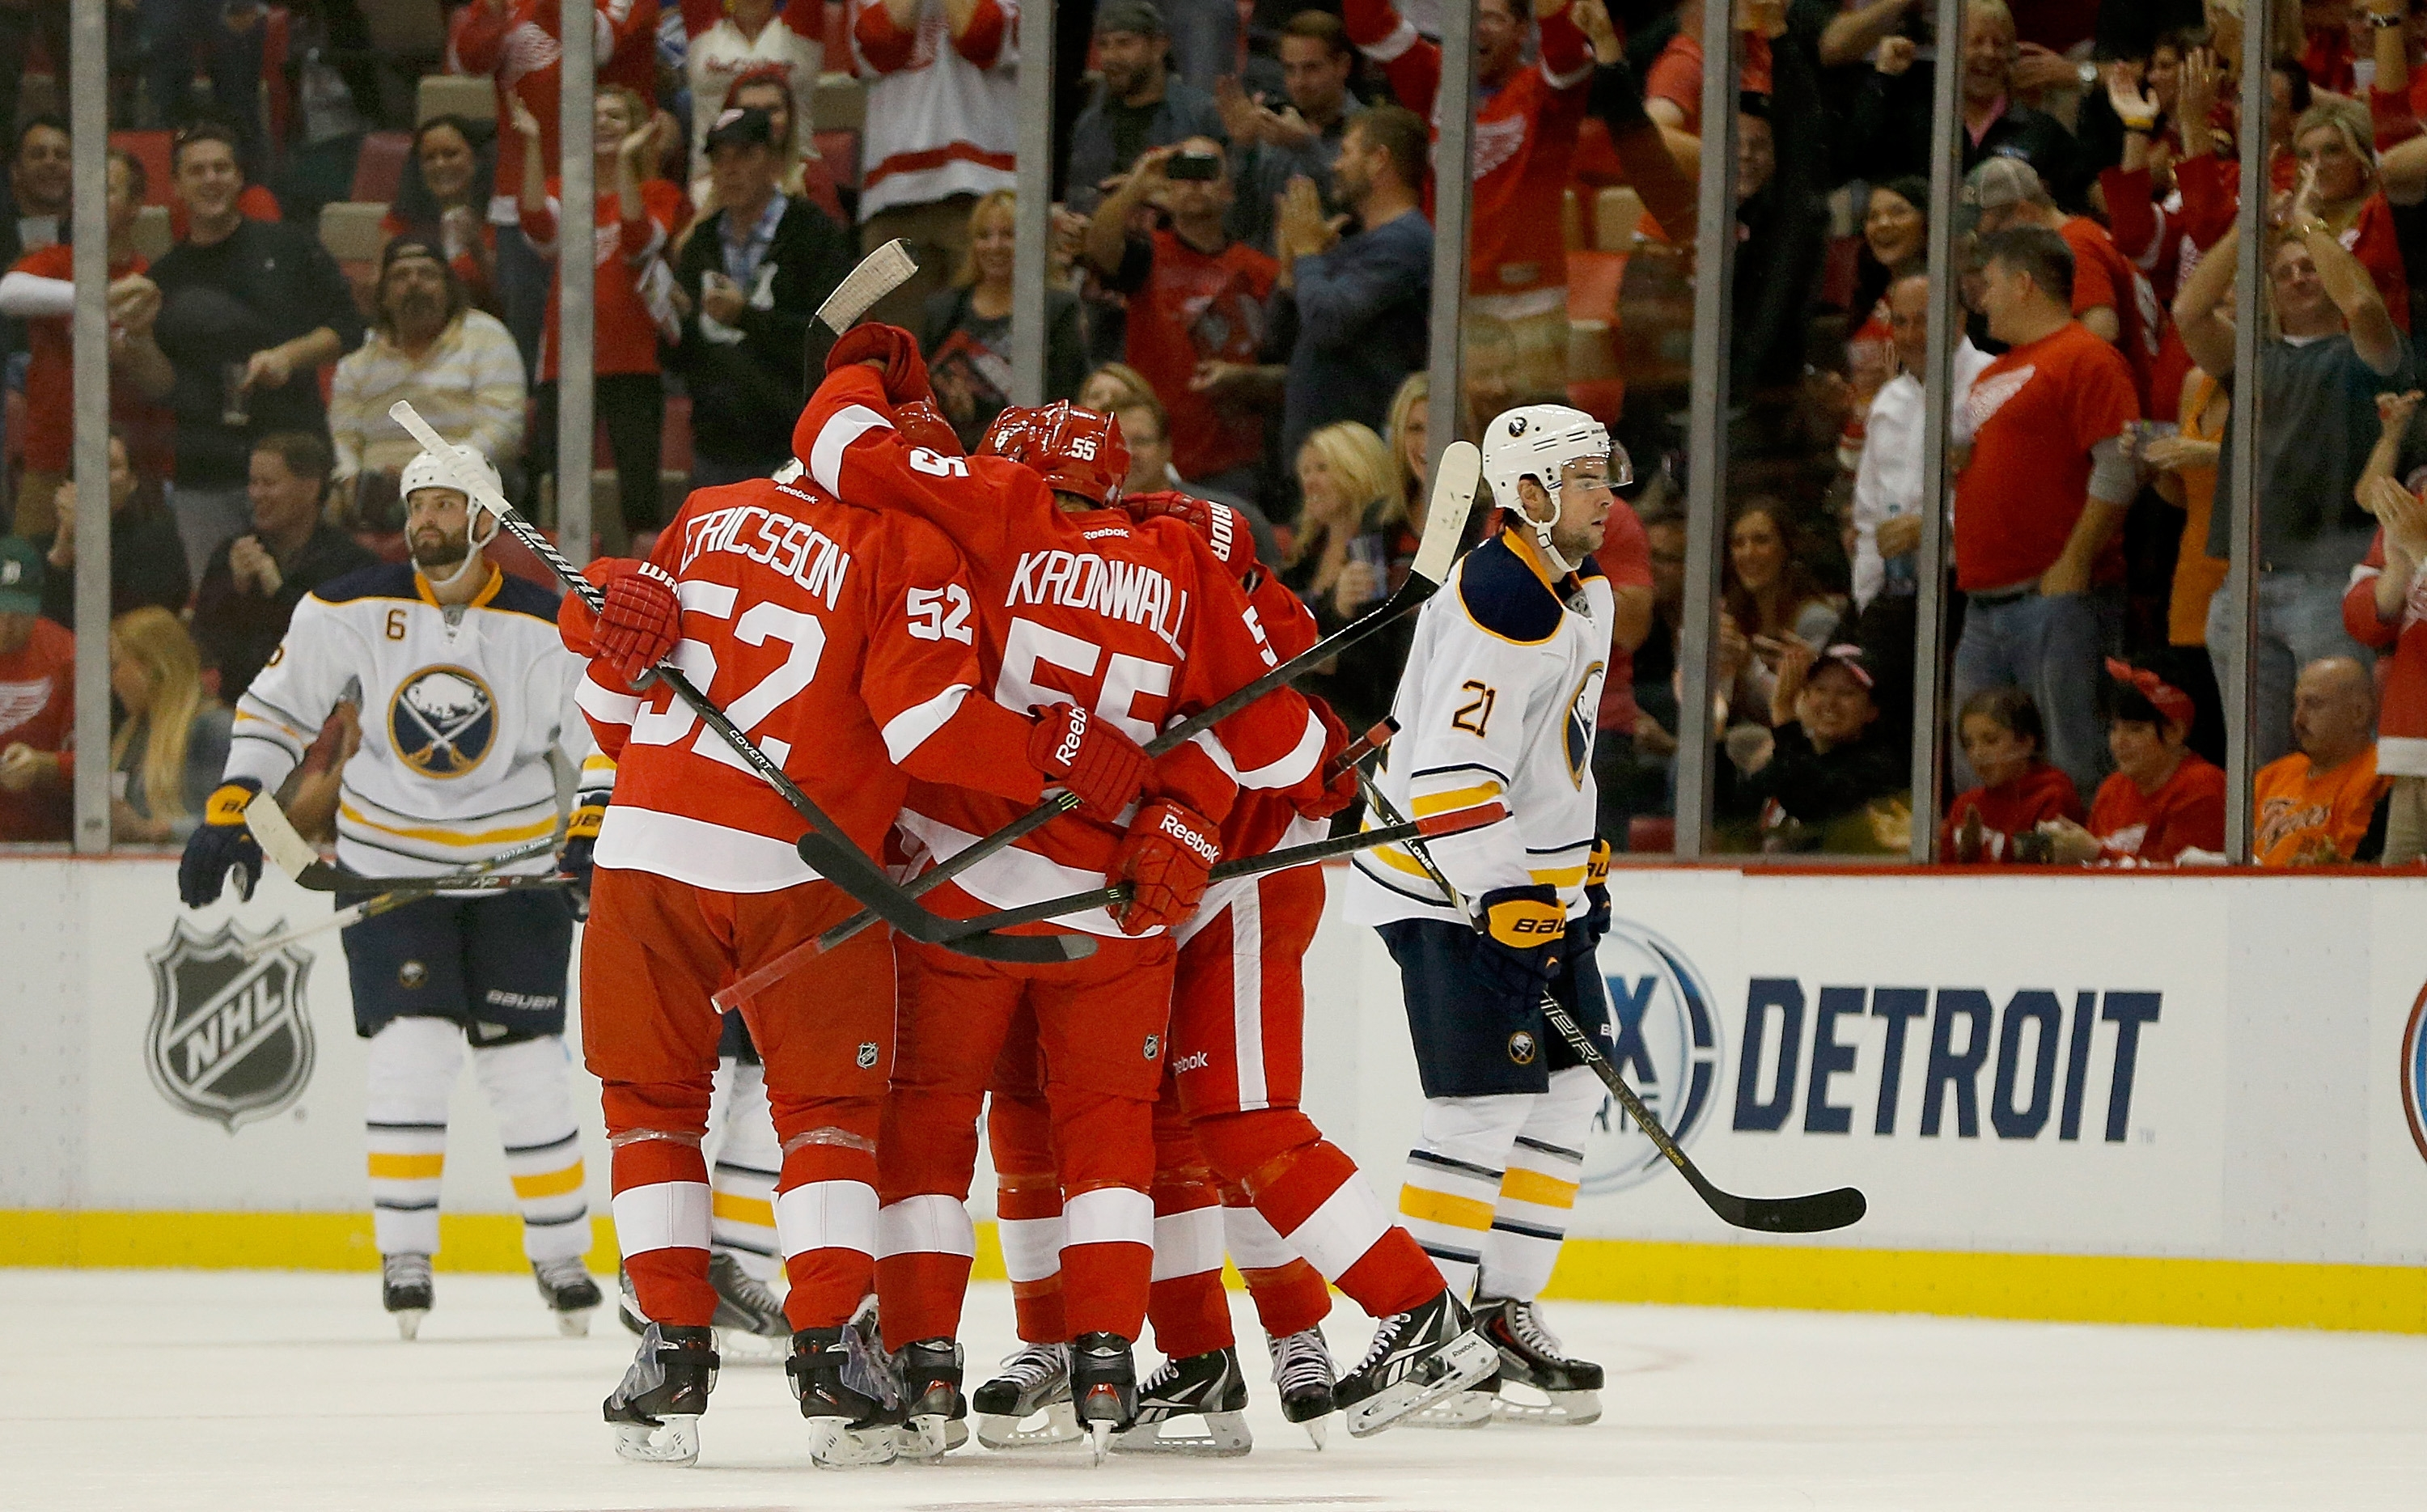 Detroit's Jonathan Ericsson and Niklas Kronwall celebrate Pavel Datsyuk's first-period goal in front of Buffalo's Drew Stafford (21).